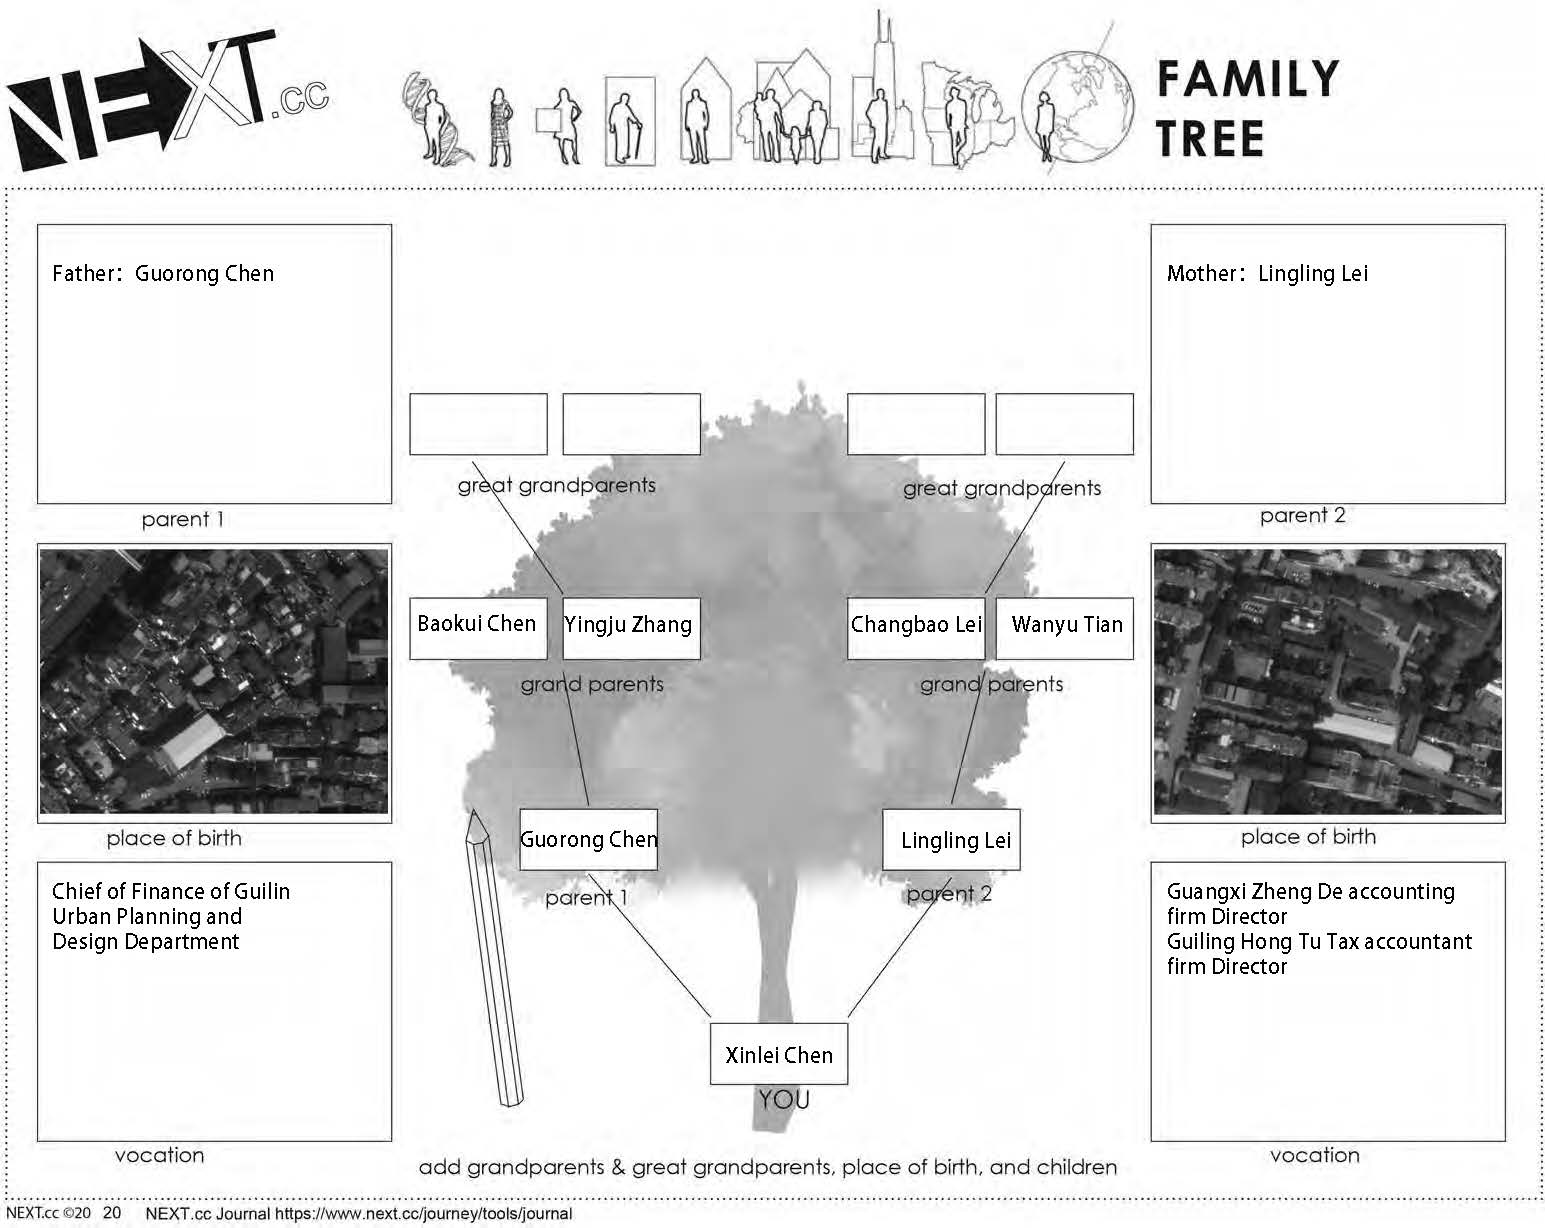 Images 1611014551 familytree a1 xinleichen